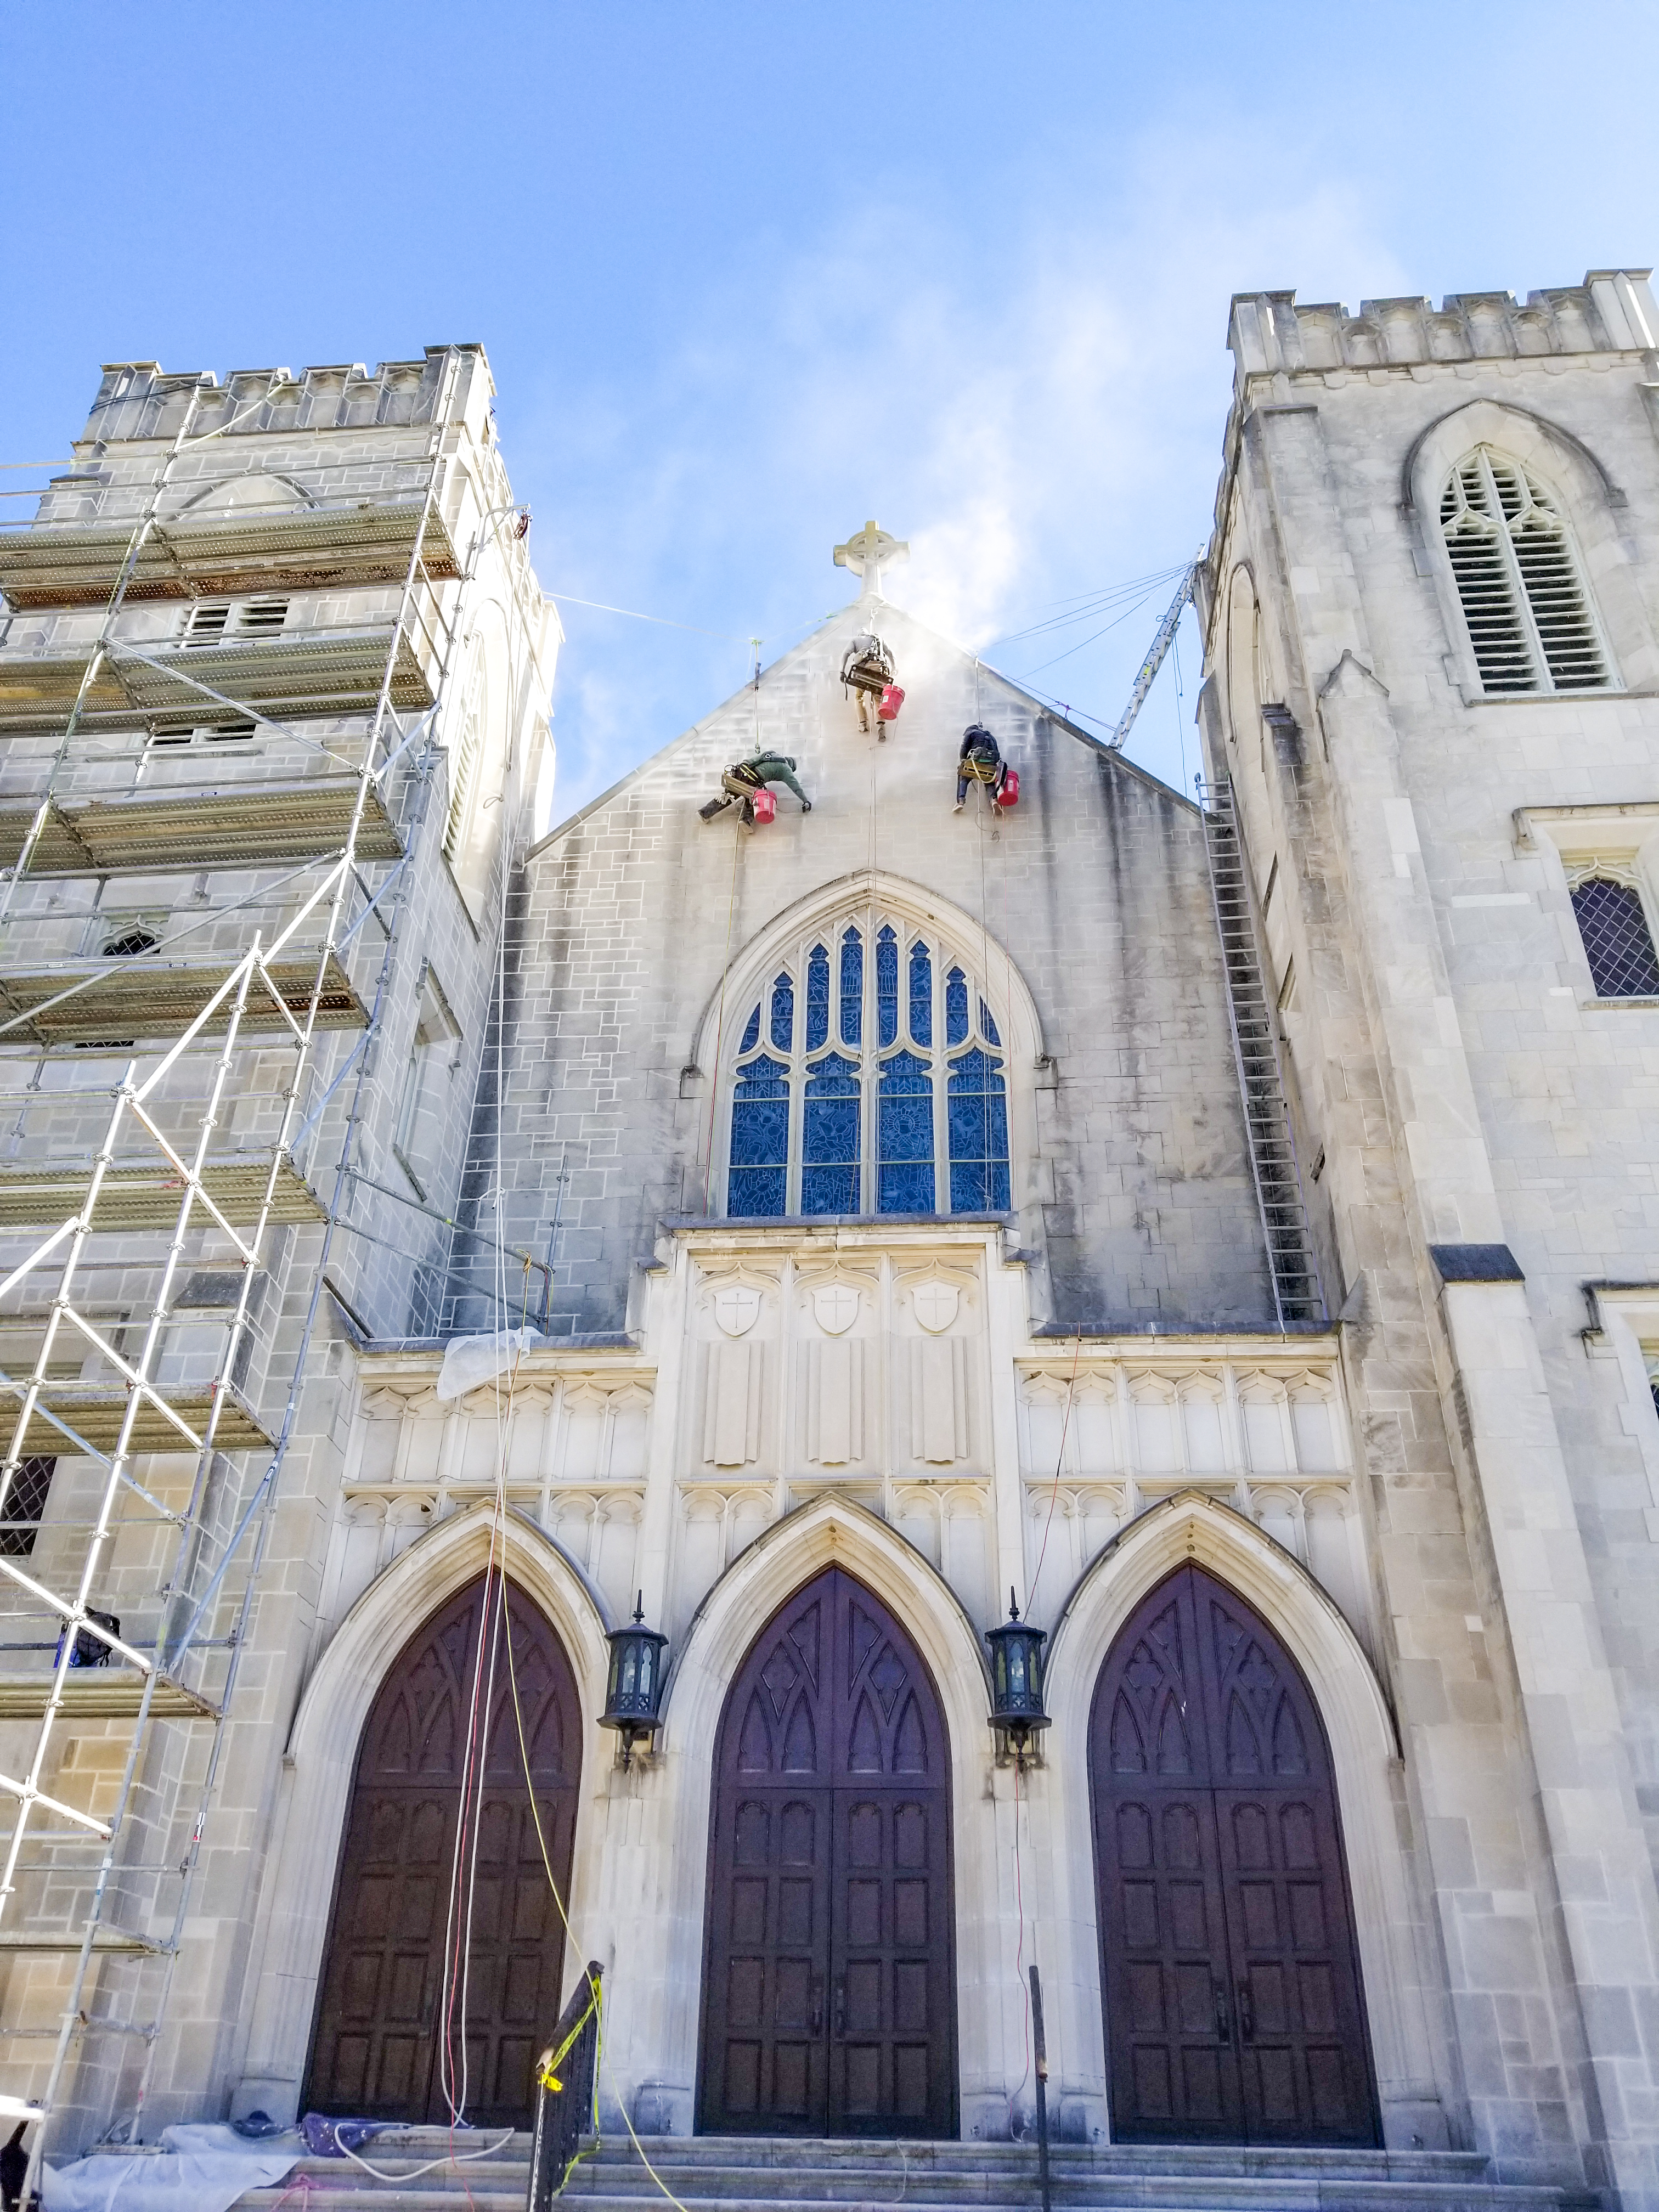 Presto technicians rappel from structure to restore stone surface of historic Mulberry Street United Methodist Church in Macon, Georgia